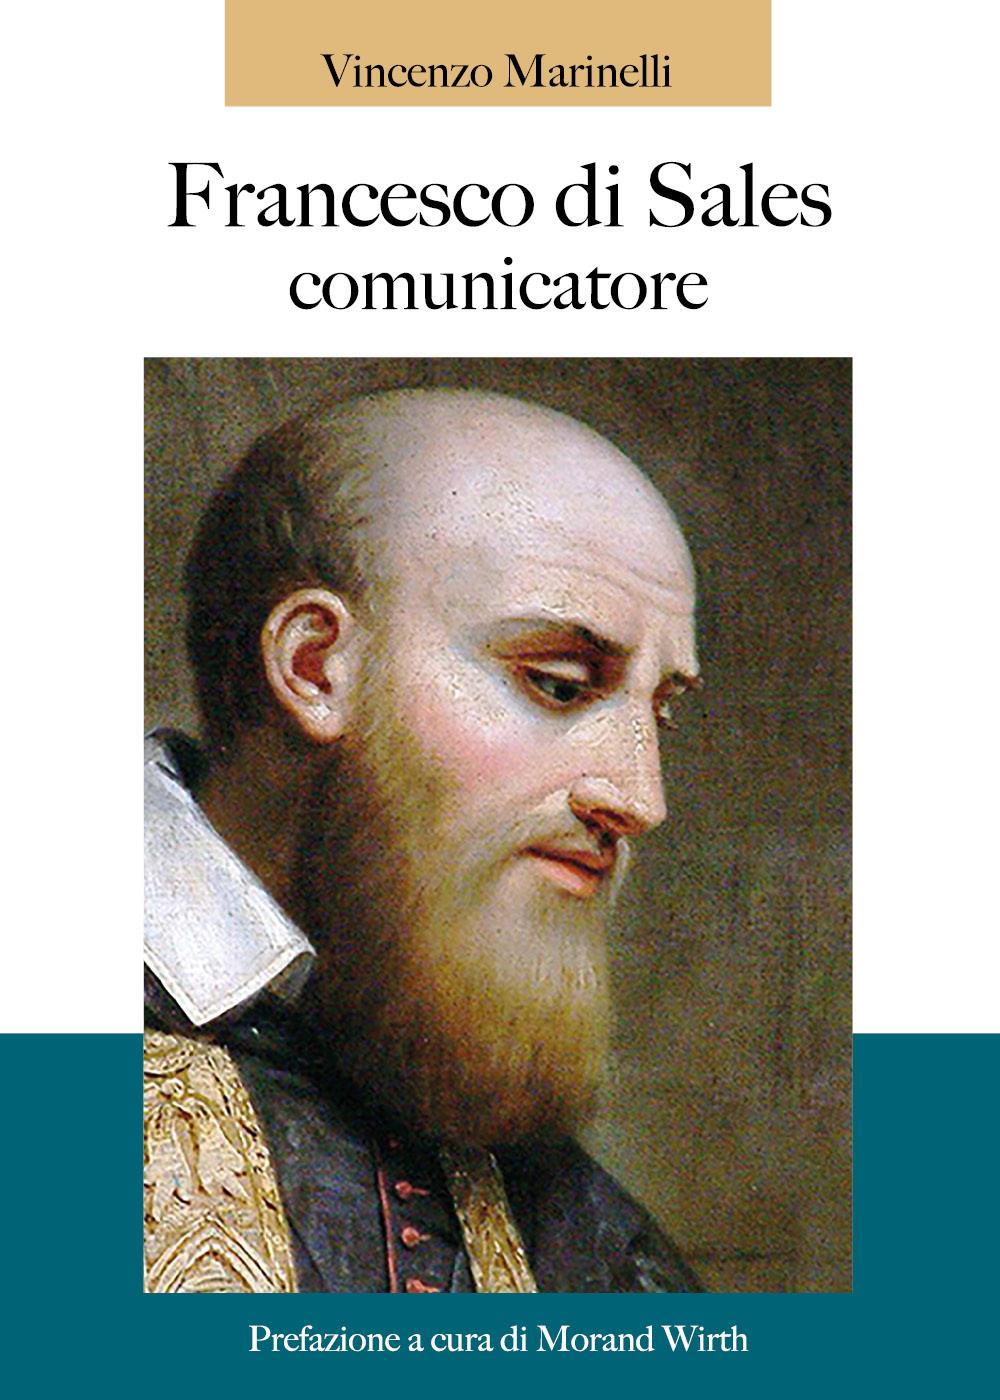 Francesco di Sales comunicatore